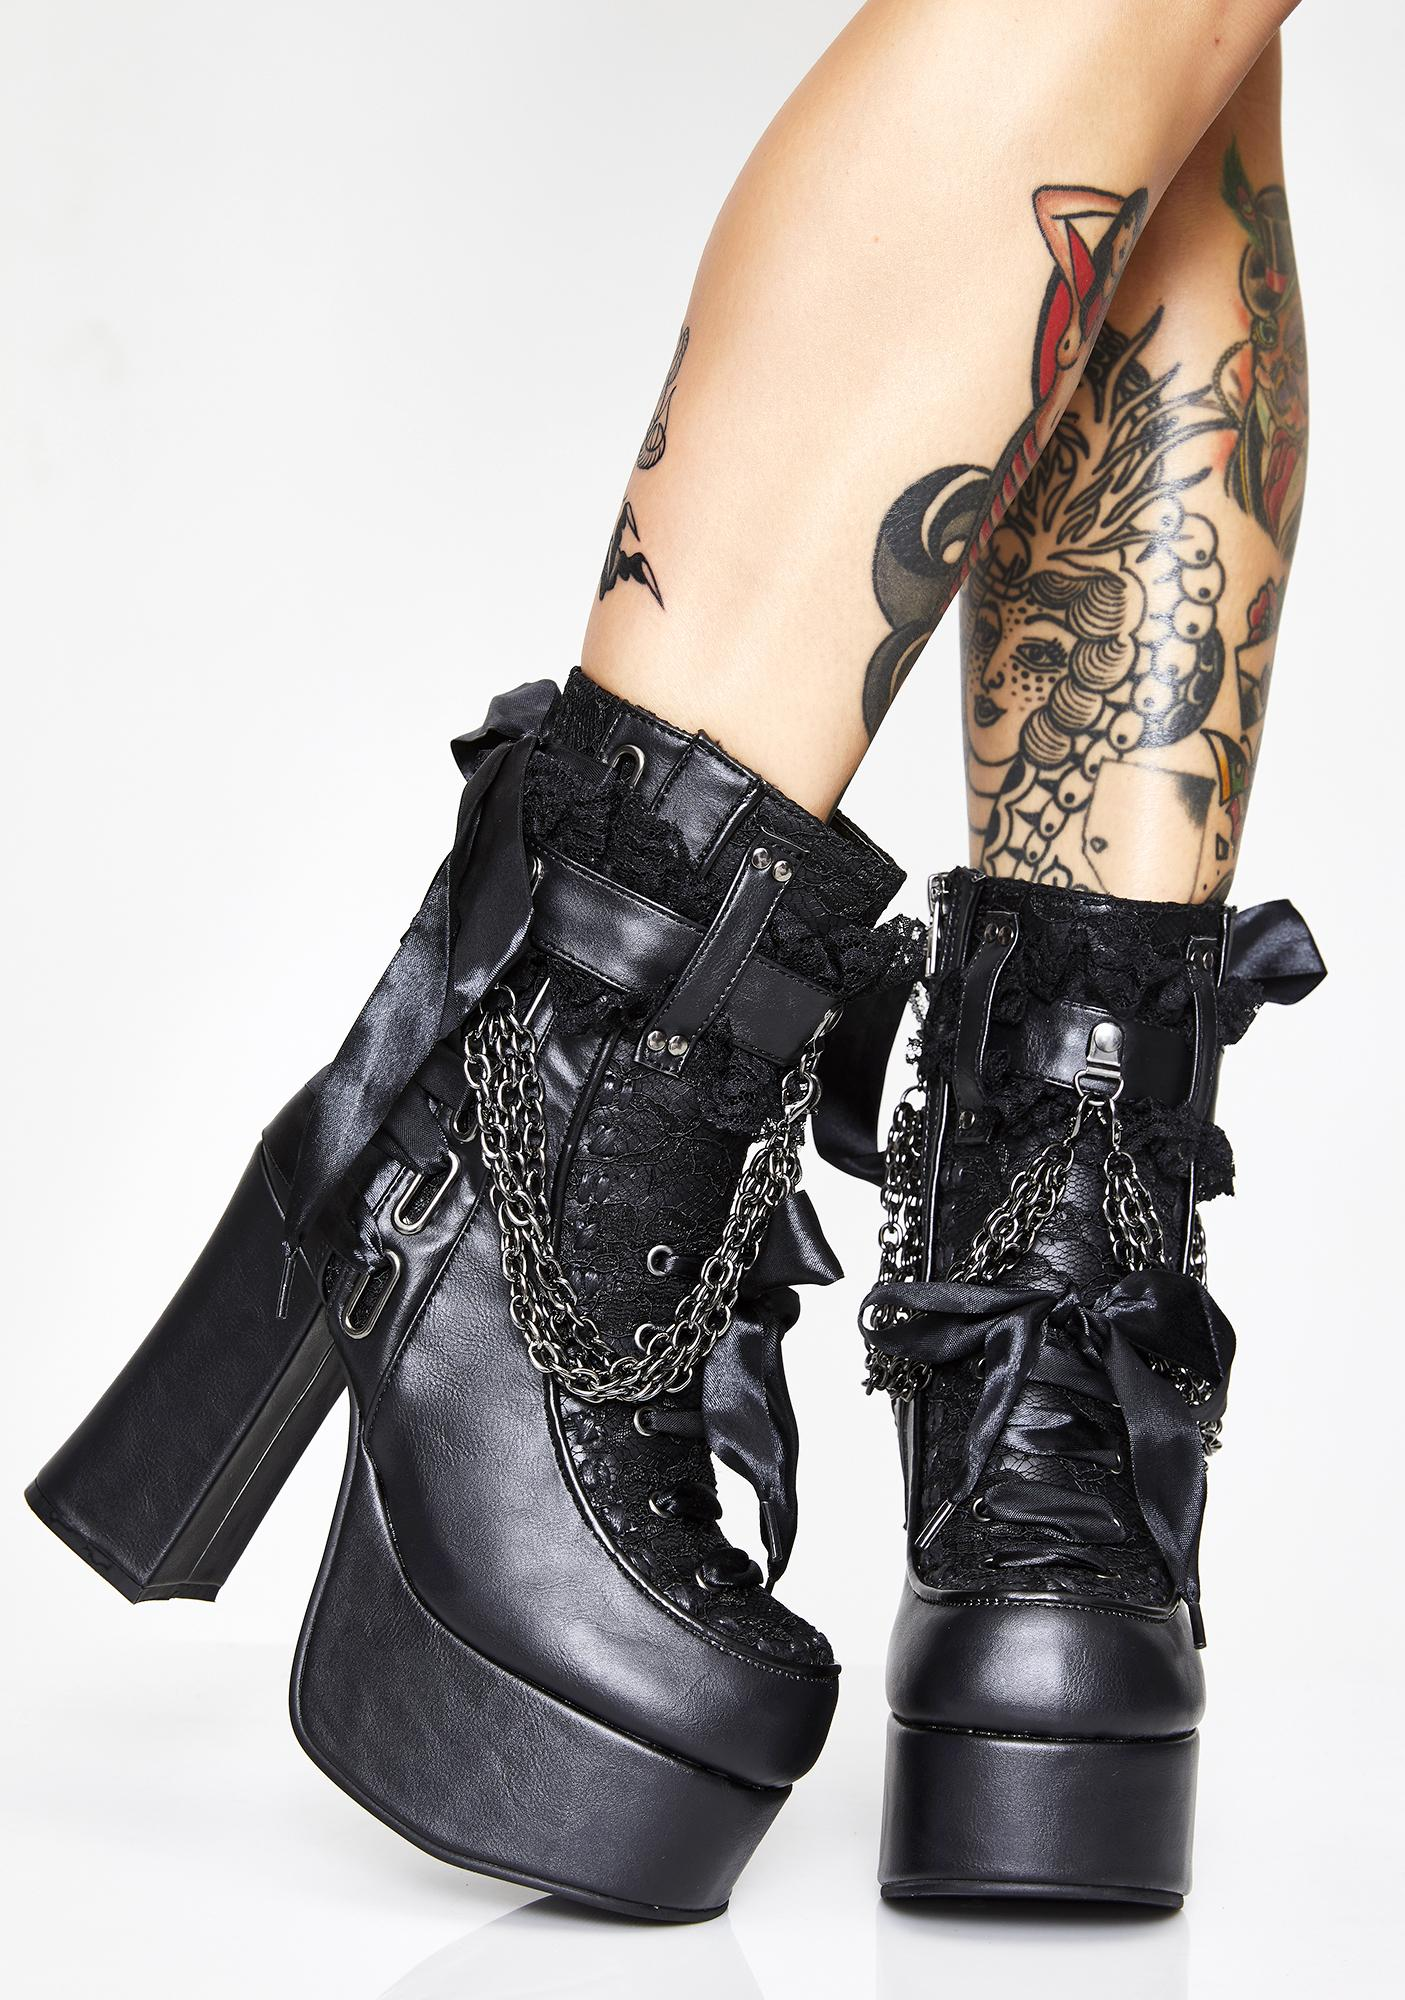 Demonia Charade Shock Ankle Boots